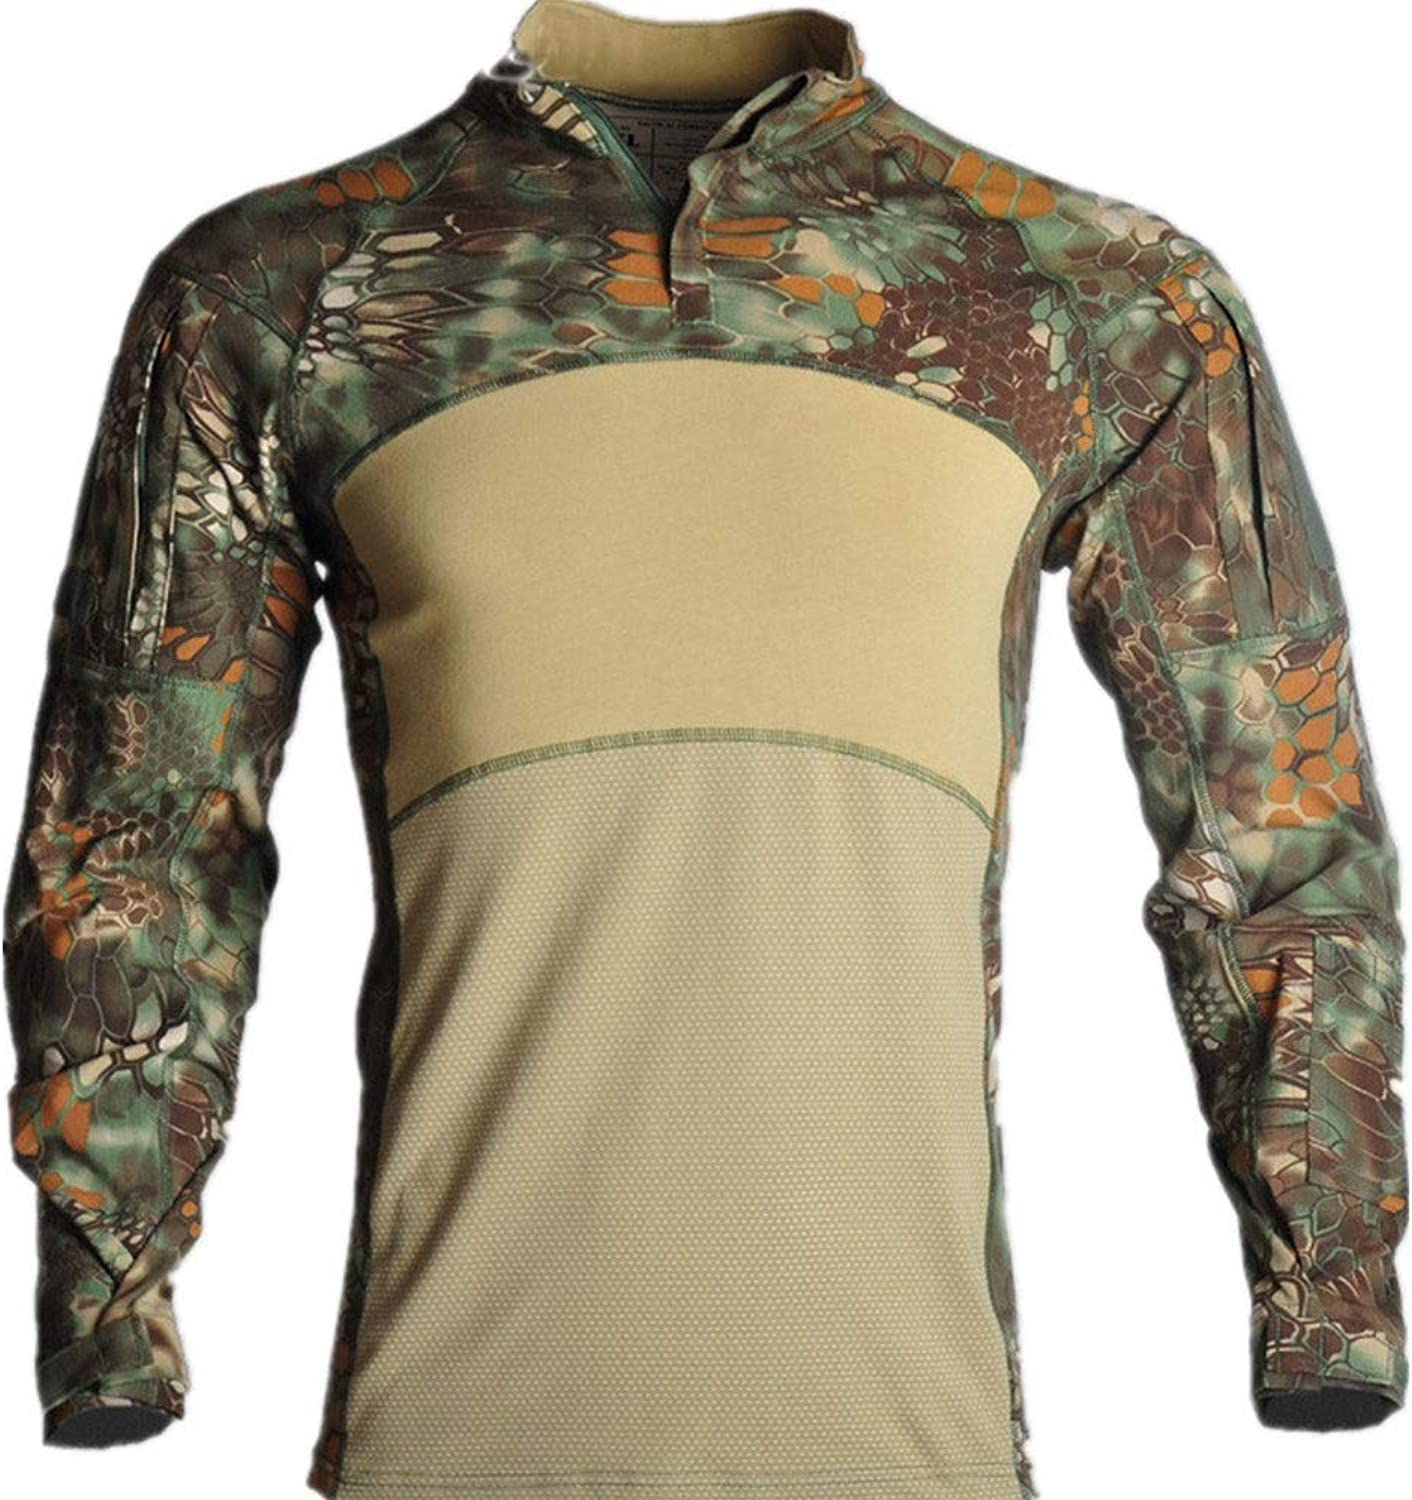 NEW VIEW Military Tactical Shirts Men's Shirt Long Sleeve Slim Fit Shirt with Zipper Combat T-Shirt